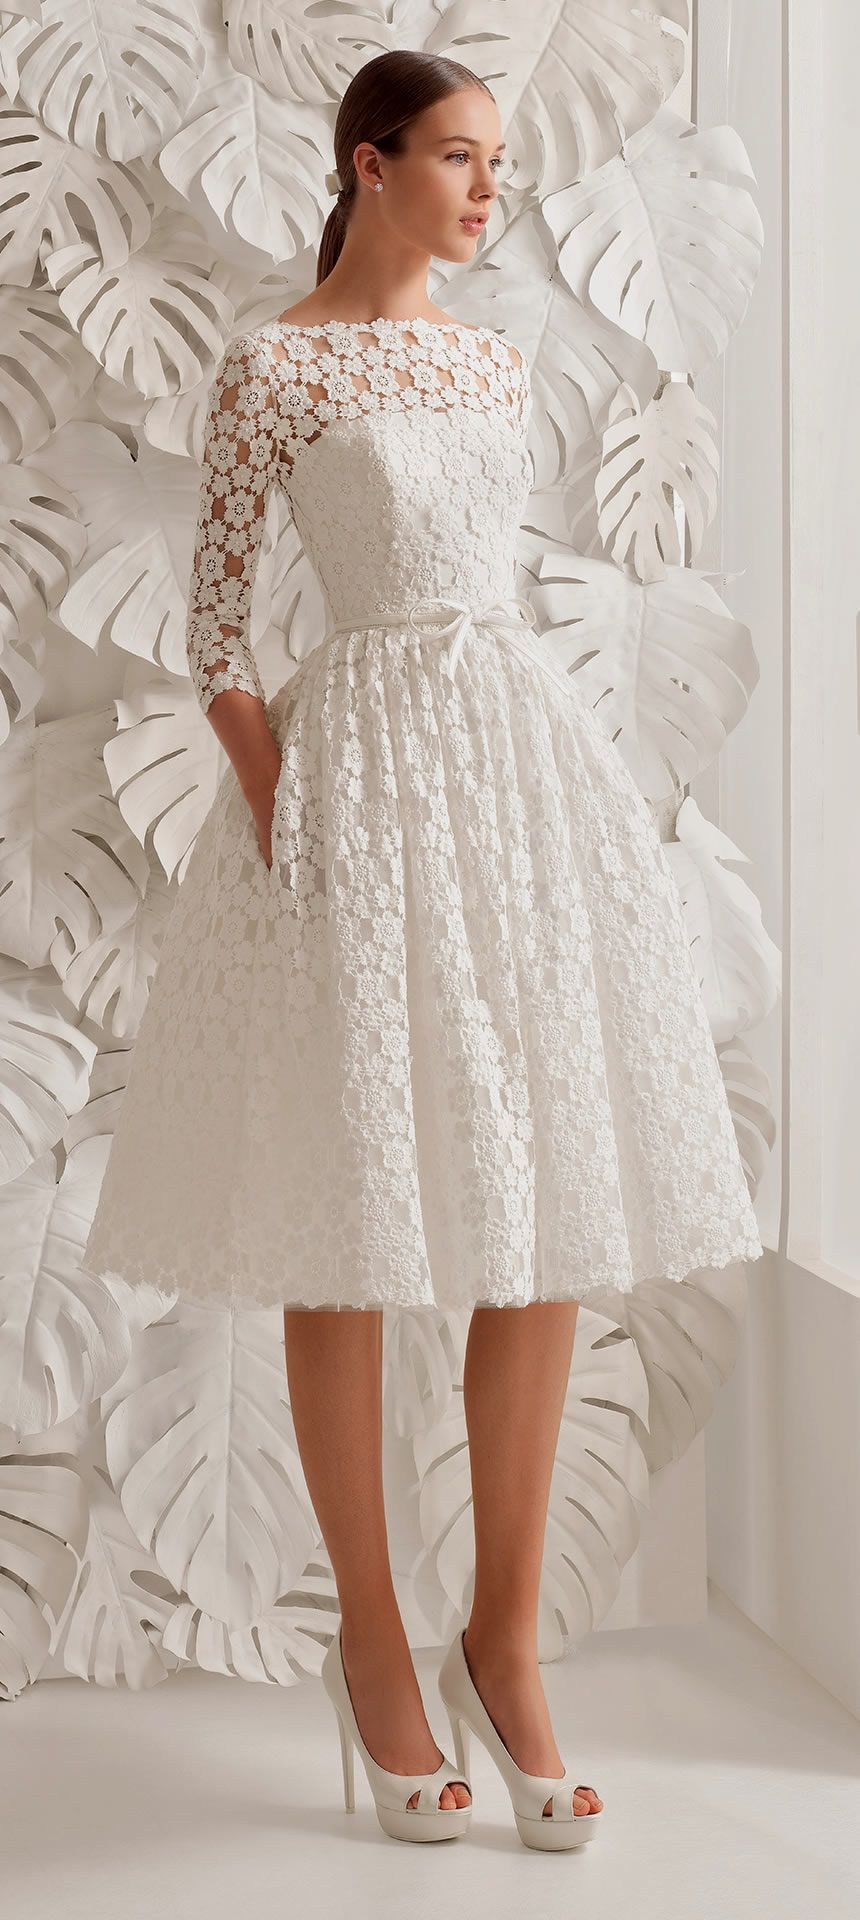 Lace dress for over 50 jobs